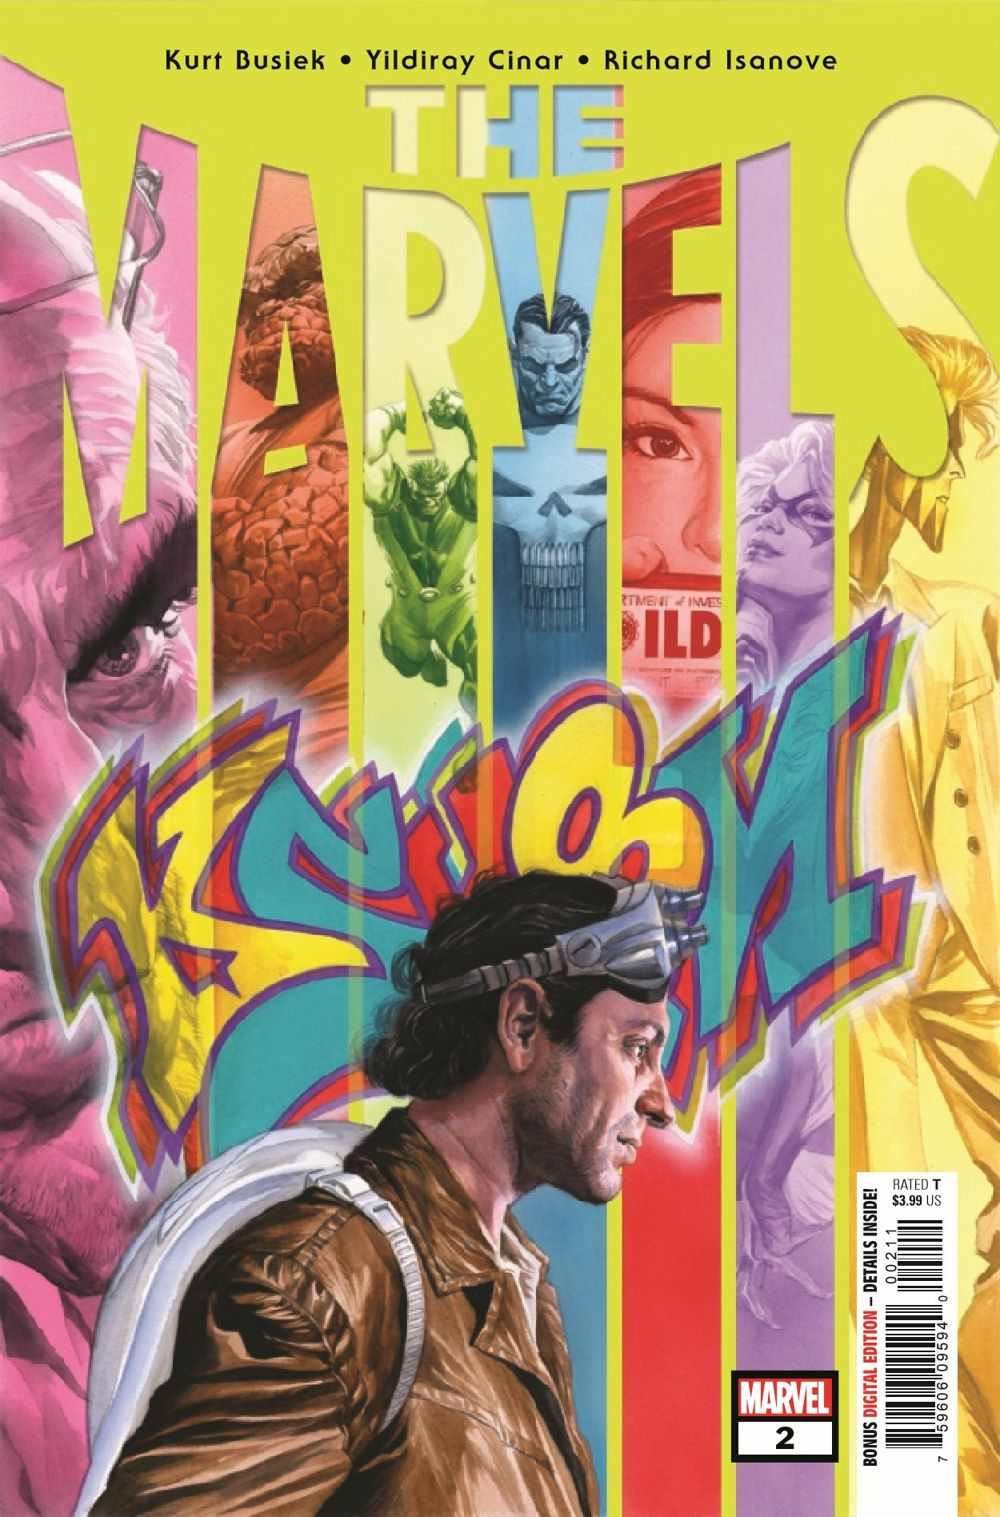 MAR2021002_Preview-1 ComicList Previews: THE MARVELS #2